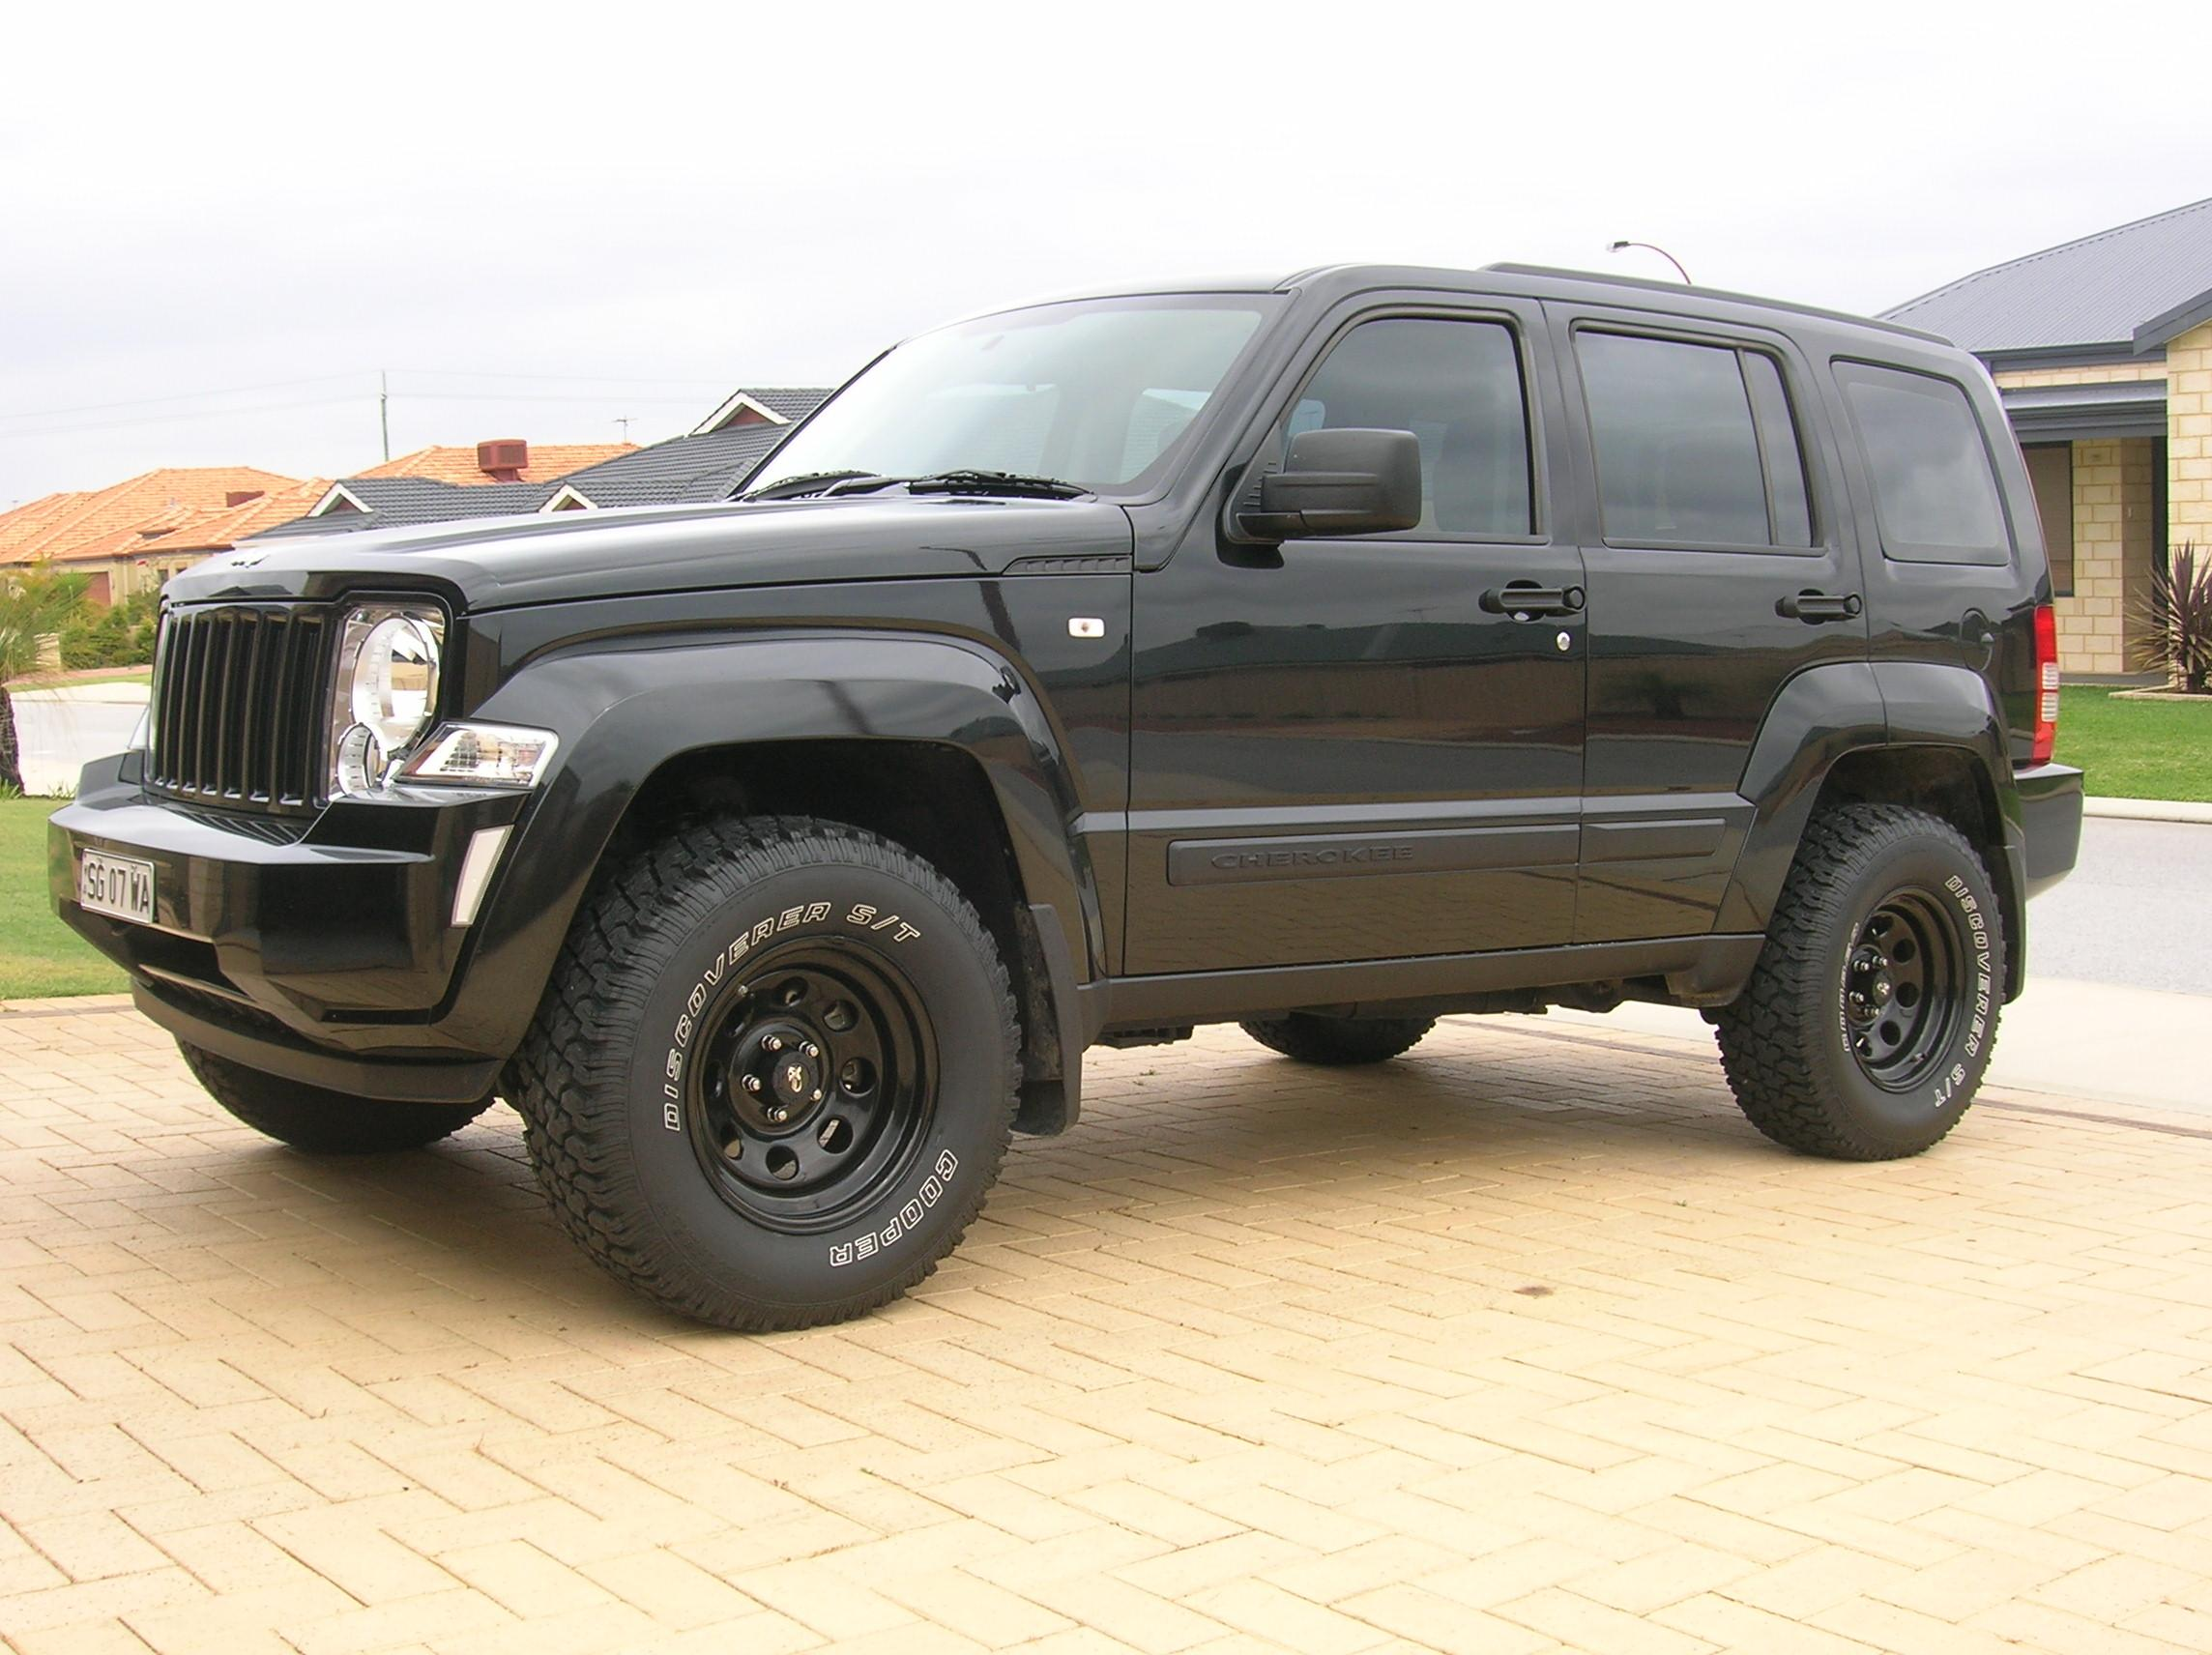 Jeep Liberty Lift Kit U003eu003e Simmo7 2008 Jeep LibertySport Sport Utility 4D  Specs, Photos